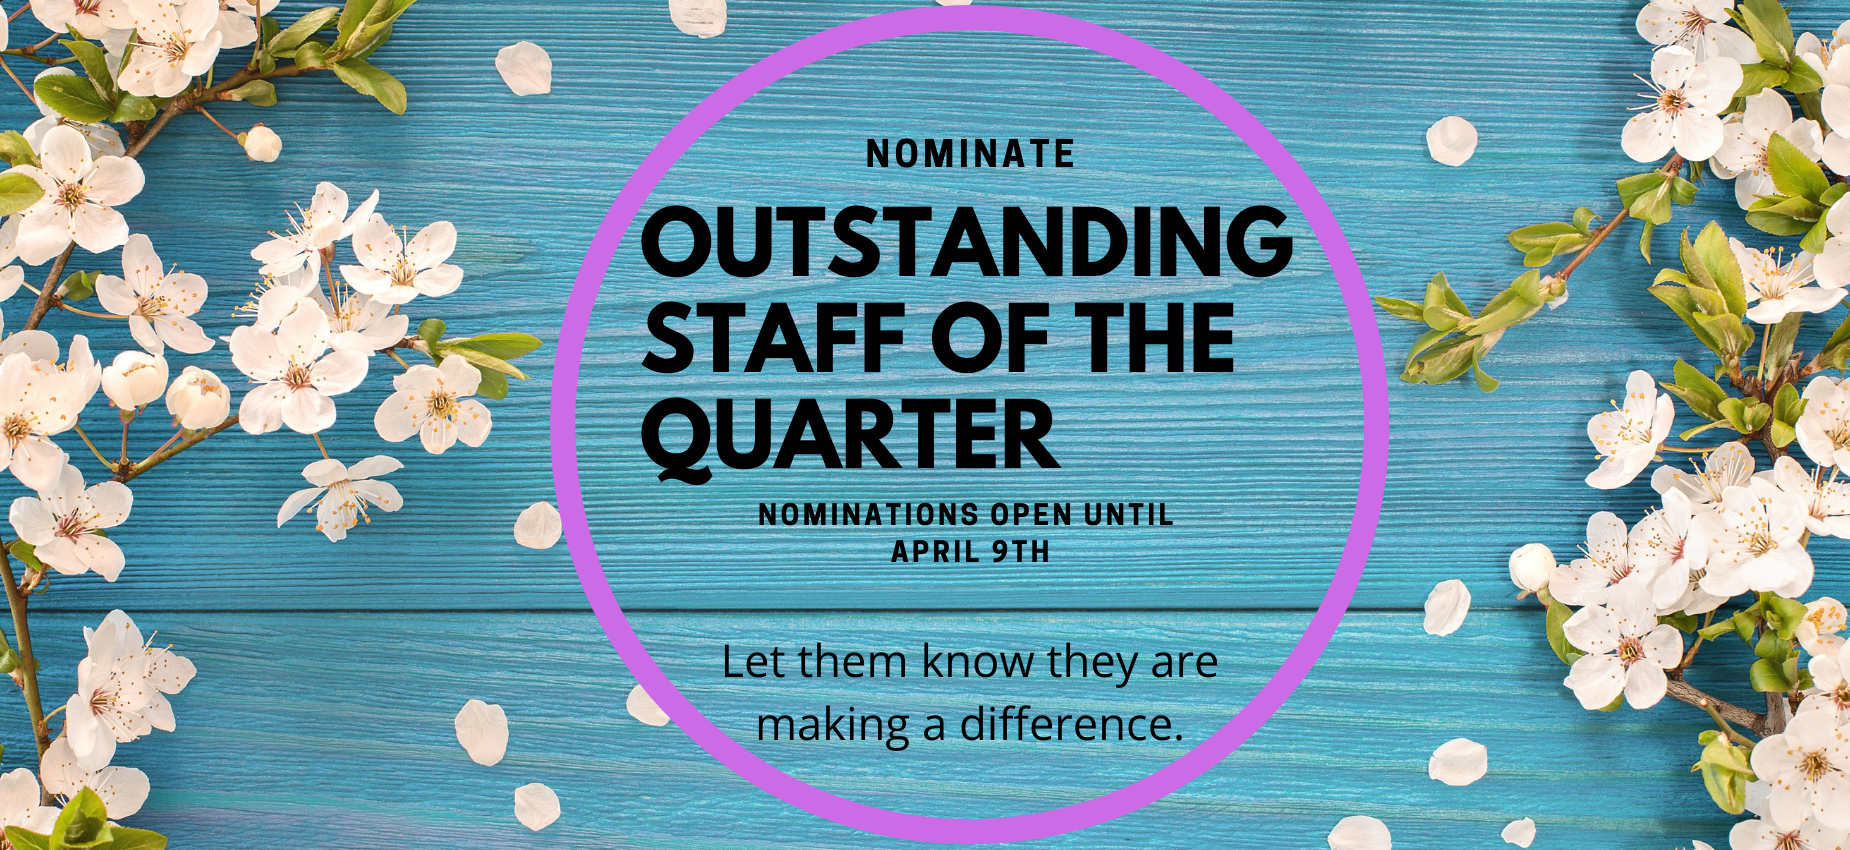 Nominate an outstanding staff member.